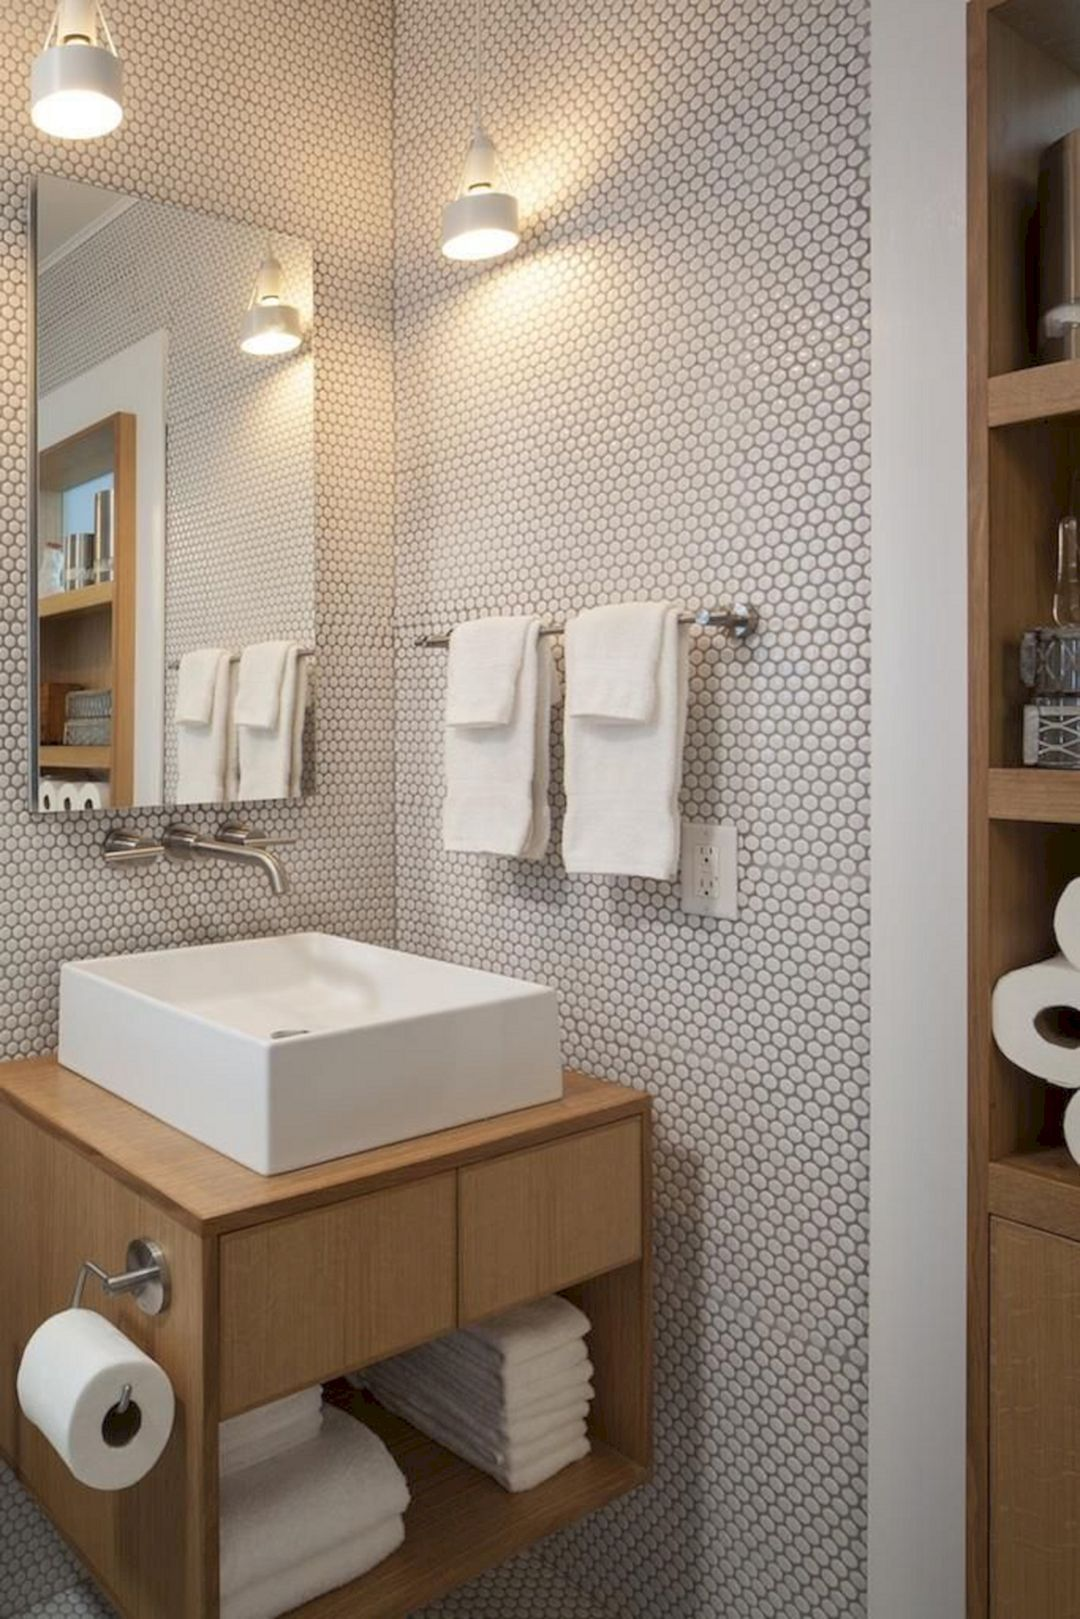 marvelous 25 awesome scandinavian bathroom design ideas on modern functional bathroom design id=52960